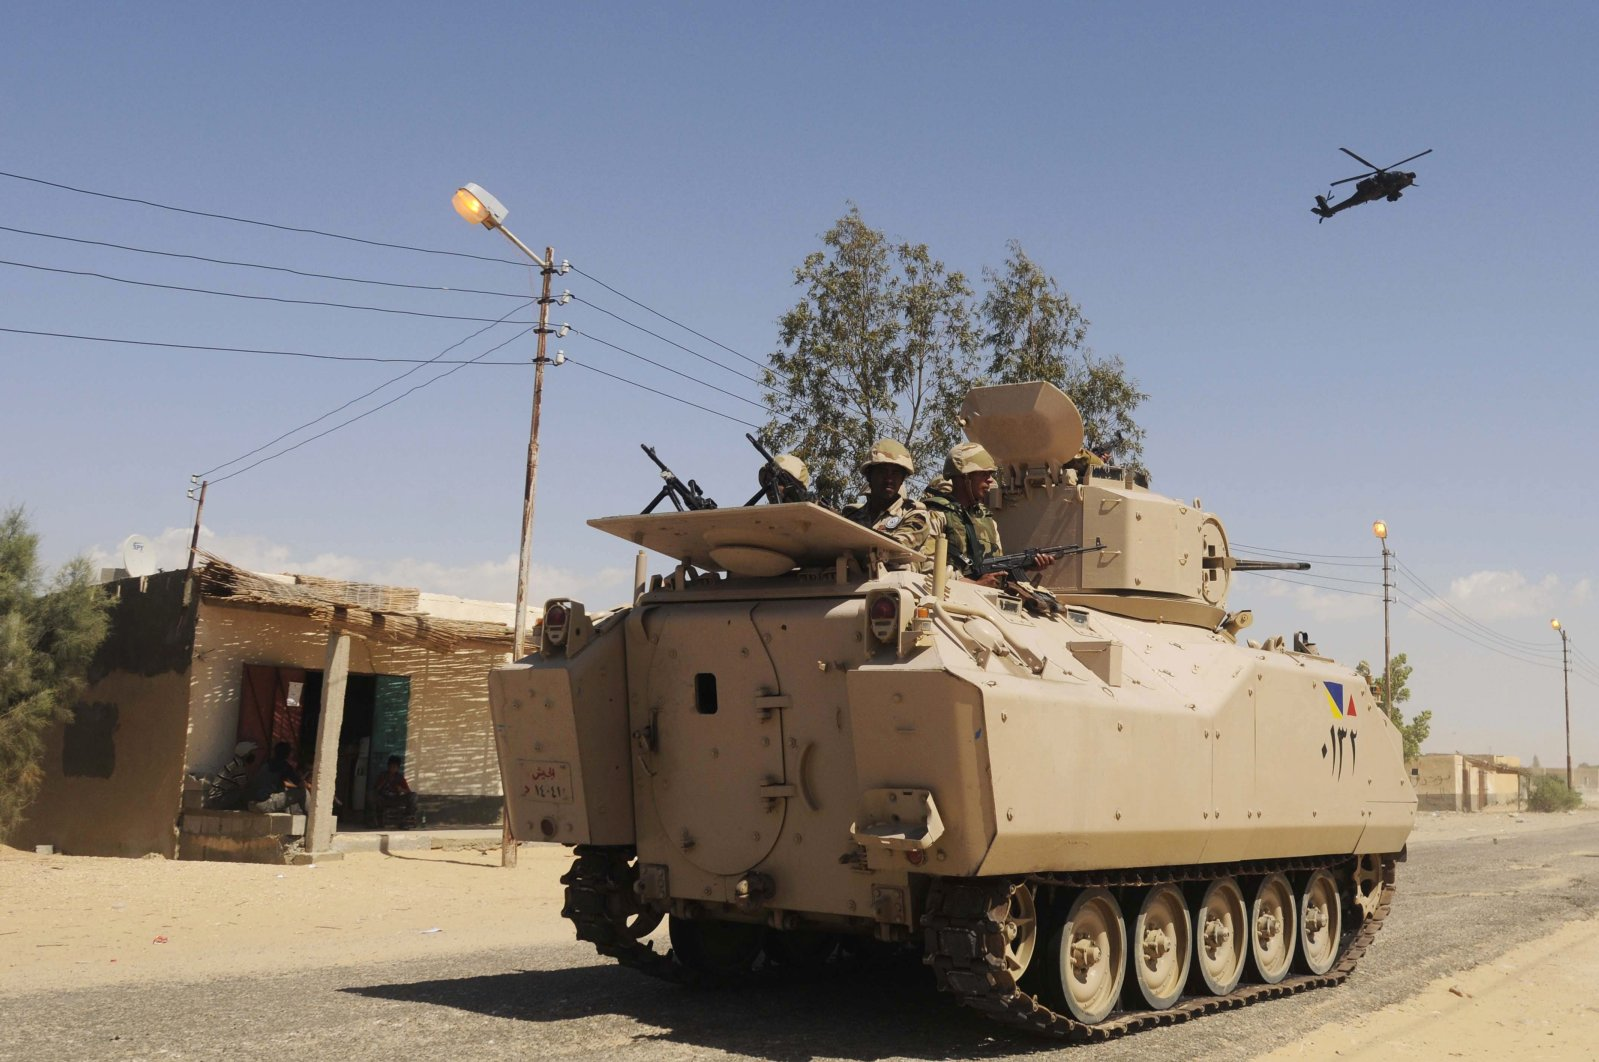 Egyptian Army soldiers patrol in an armored vehicle backed by a helicopter gunship during a sweep through villages in Sheikh Zuweyid, north Sinai, Egypt, May 12, 2013. (AP Photo)